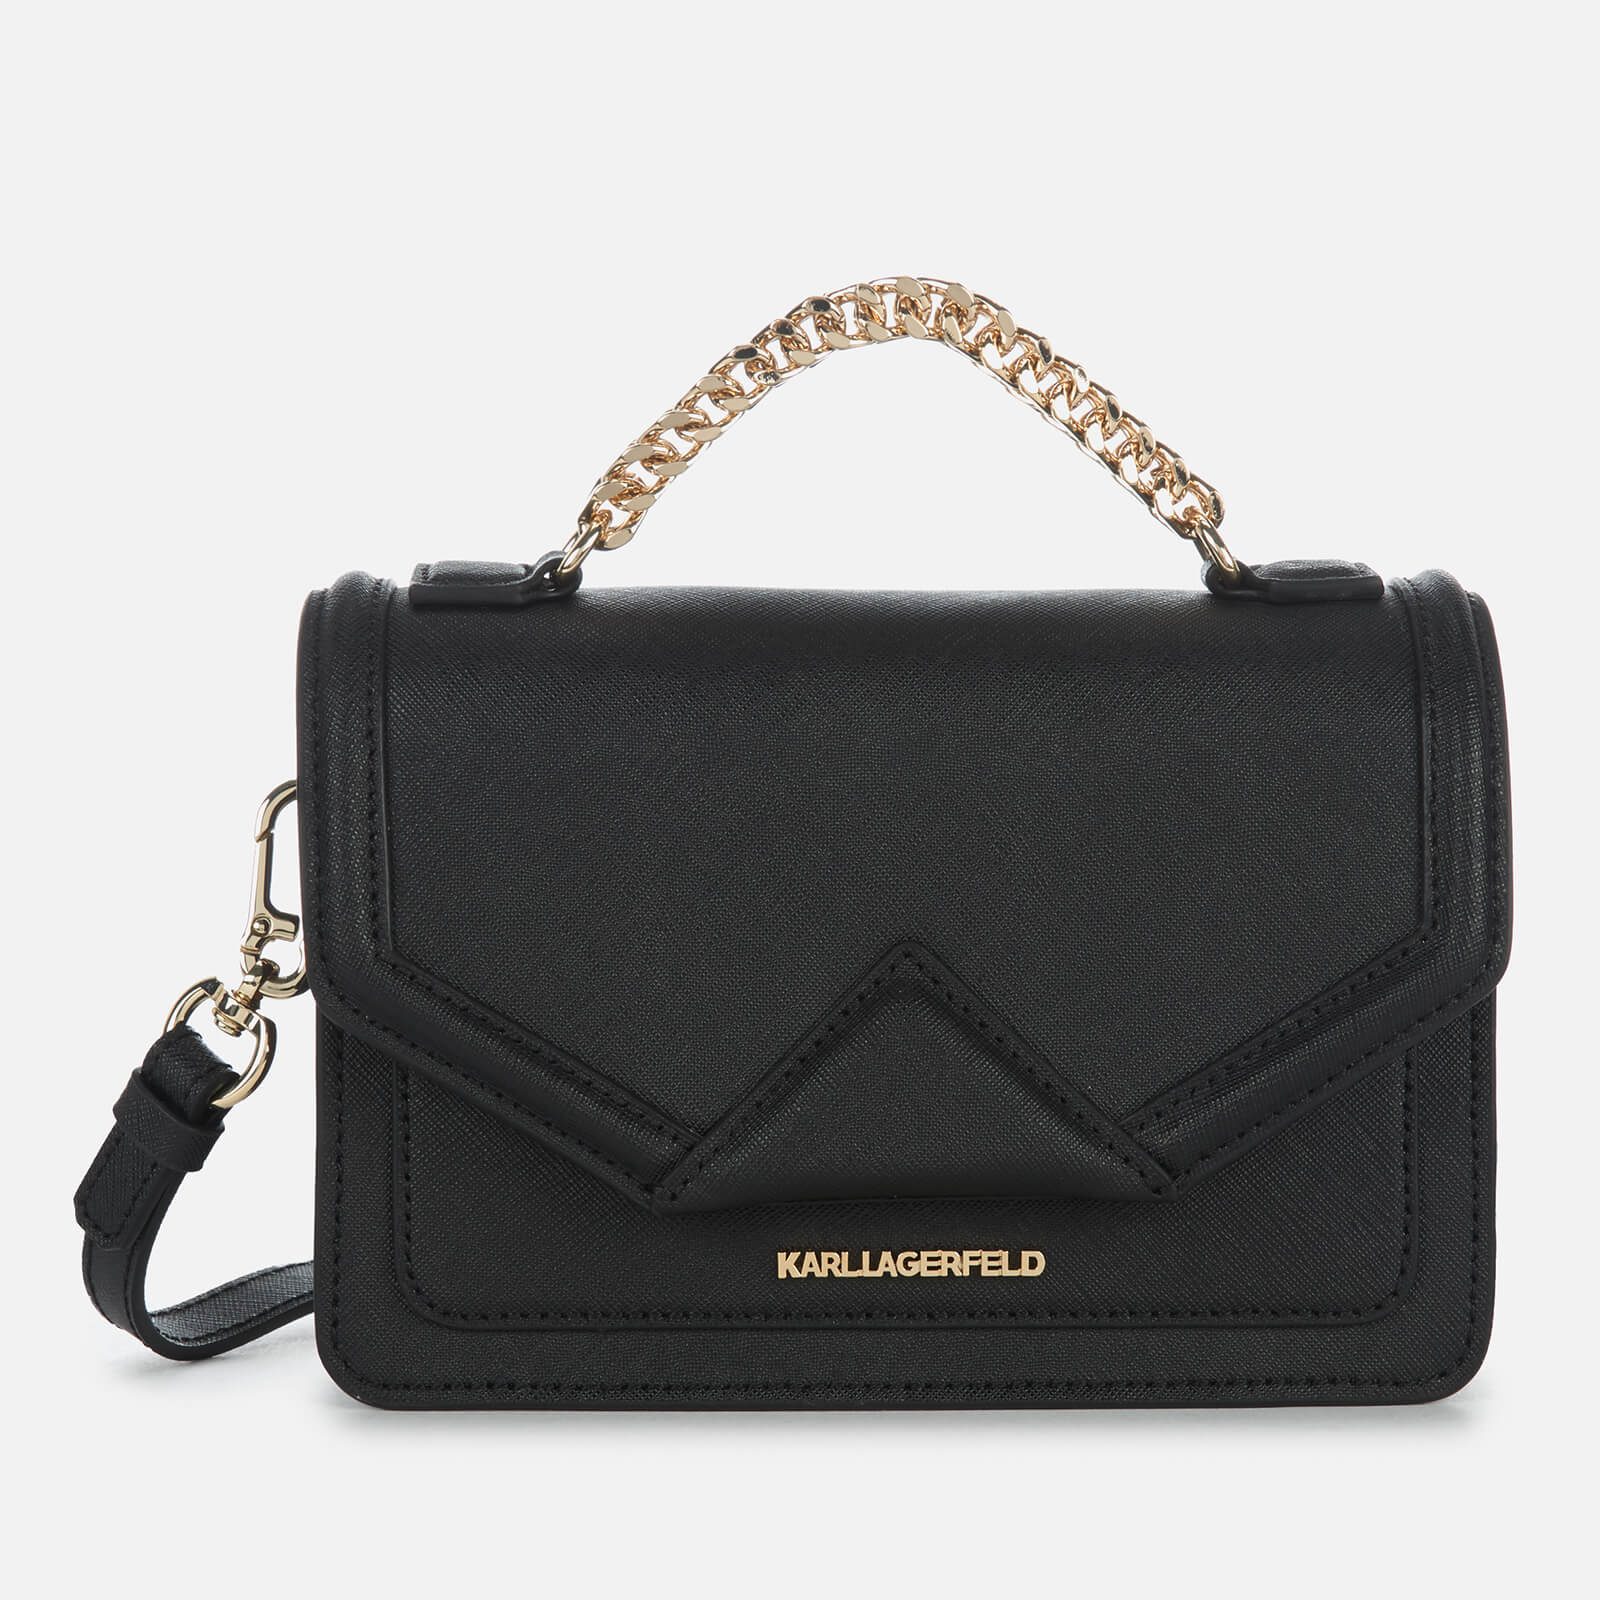 a16c28550 Karl Lagerfeld Women's K Klassik Medium Shoulder Bag - Black Womens  Accessories | TheHut.com